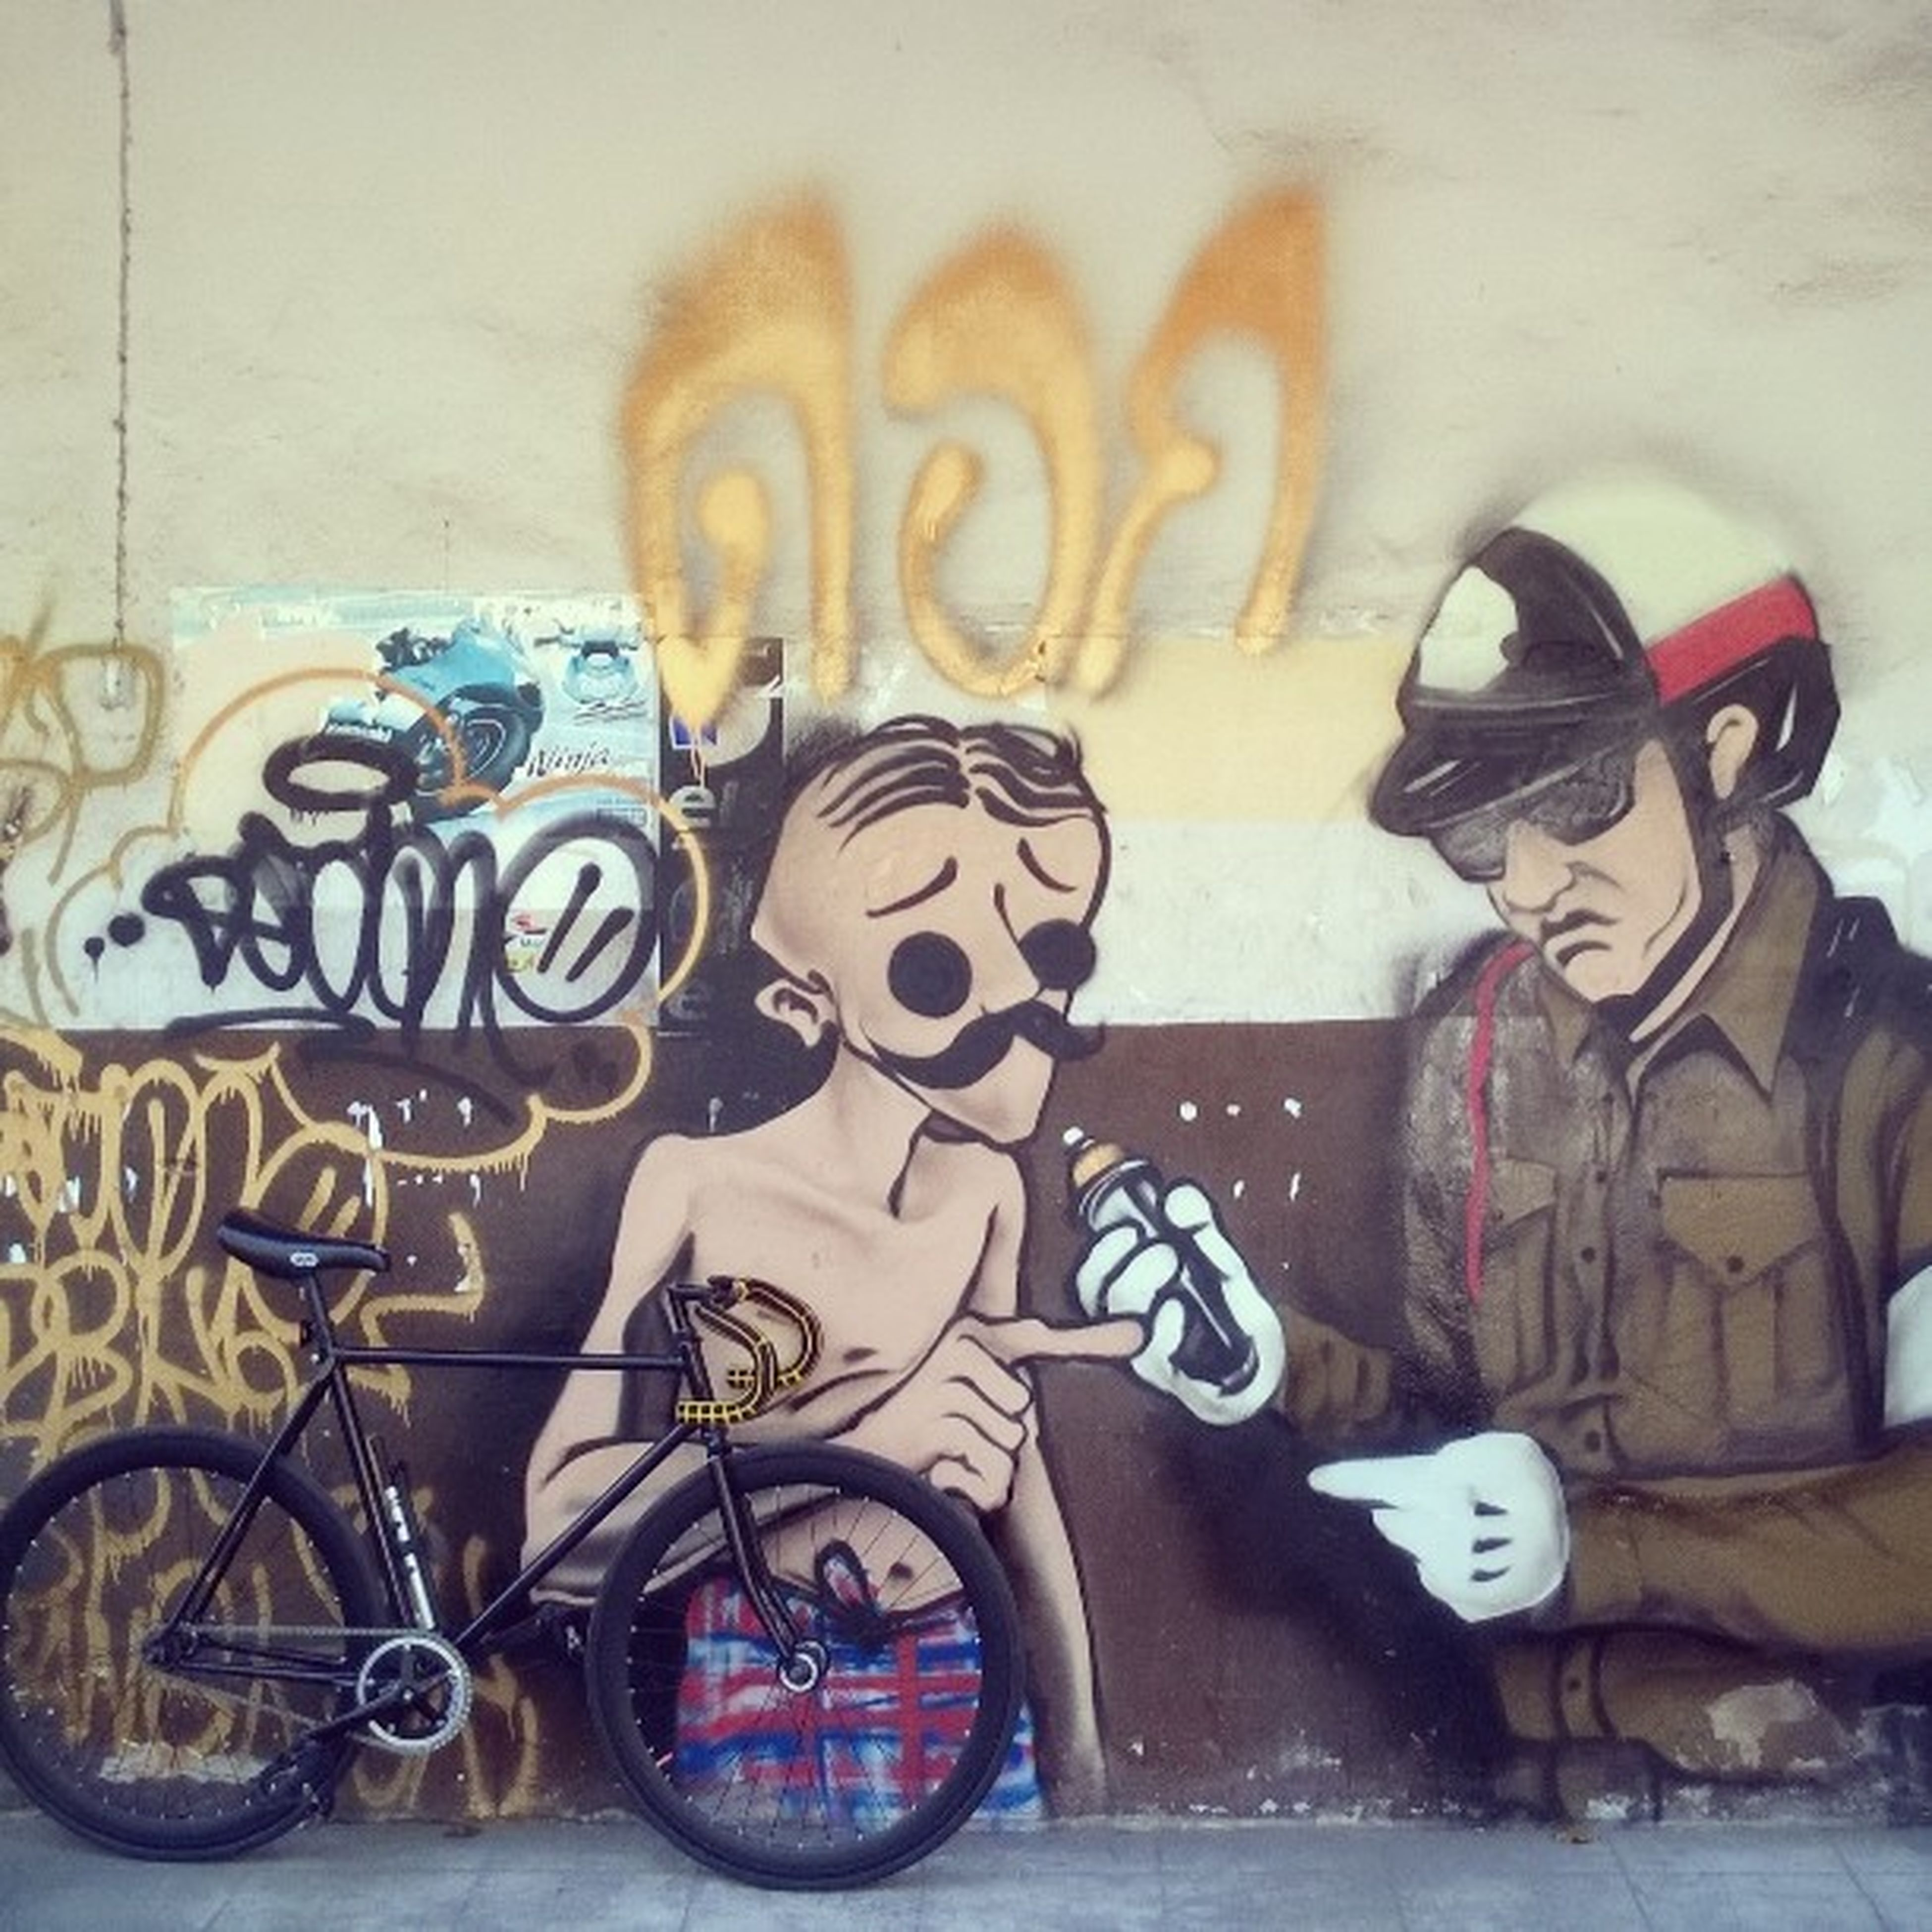 graffiti, art, art and craft, creativity, wall - building feature, human representation, street art, multi colored, bicycle, text, animal representation, wall, day, indoors, no people, transportation, western script, craft